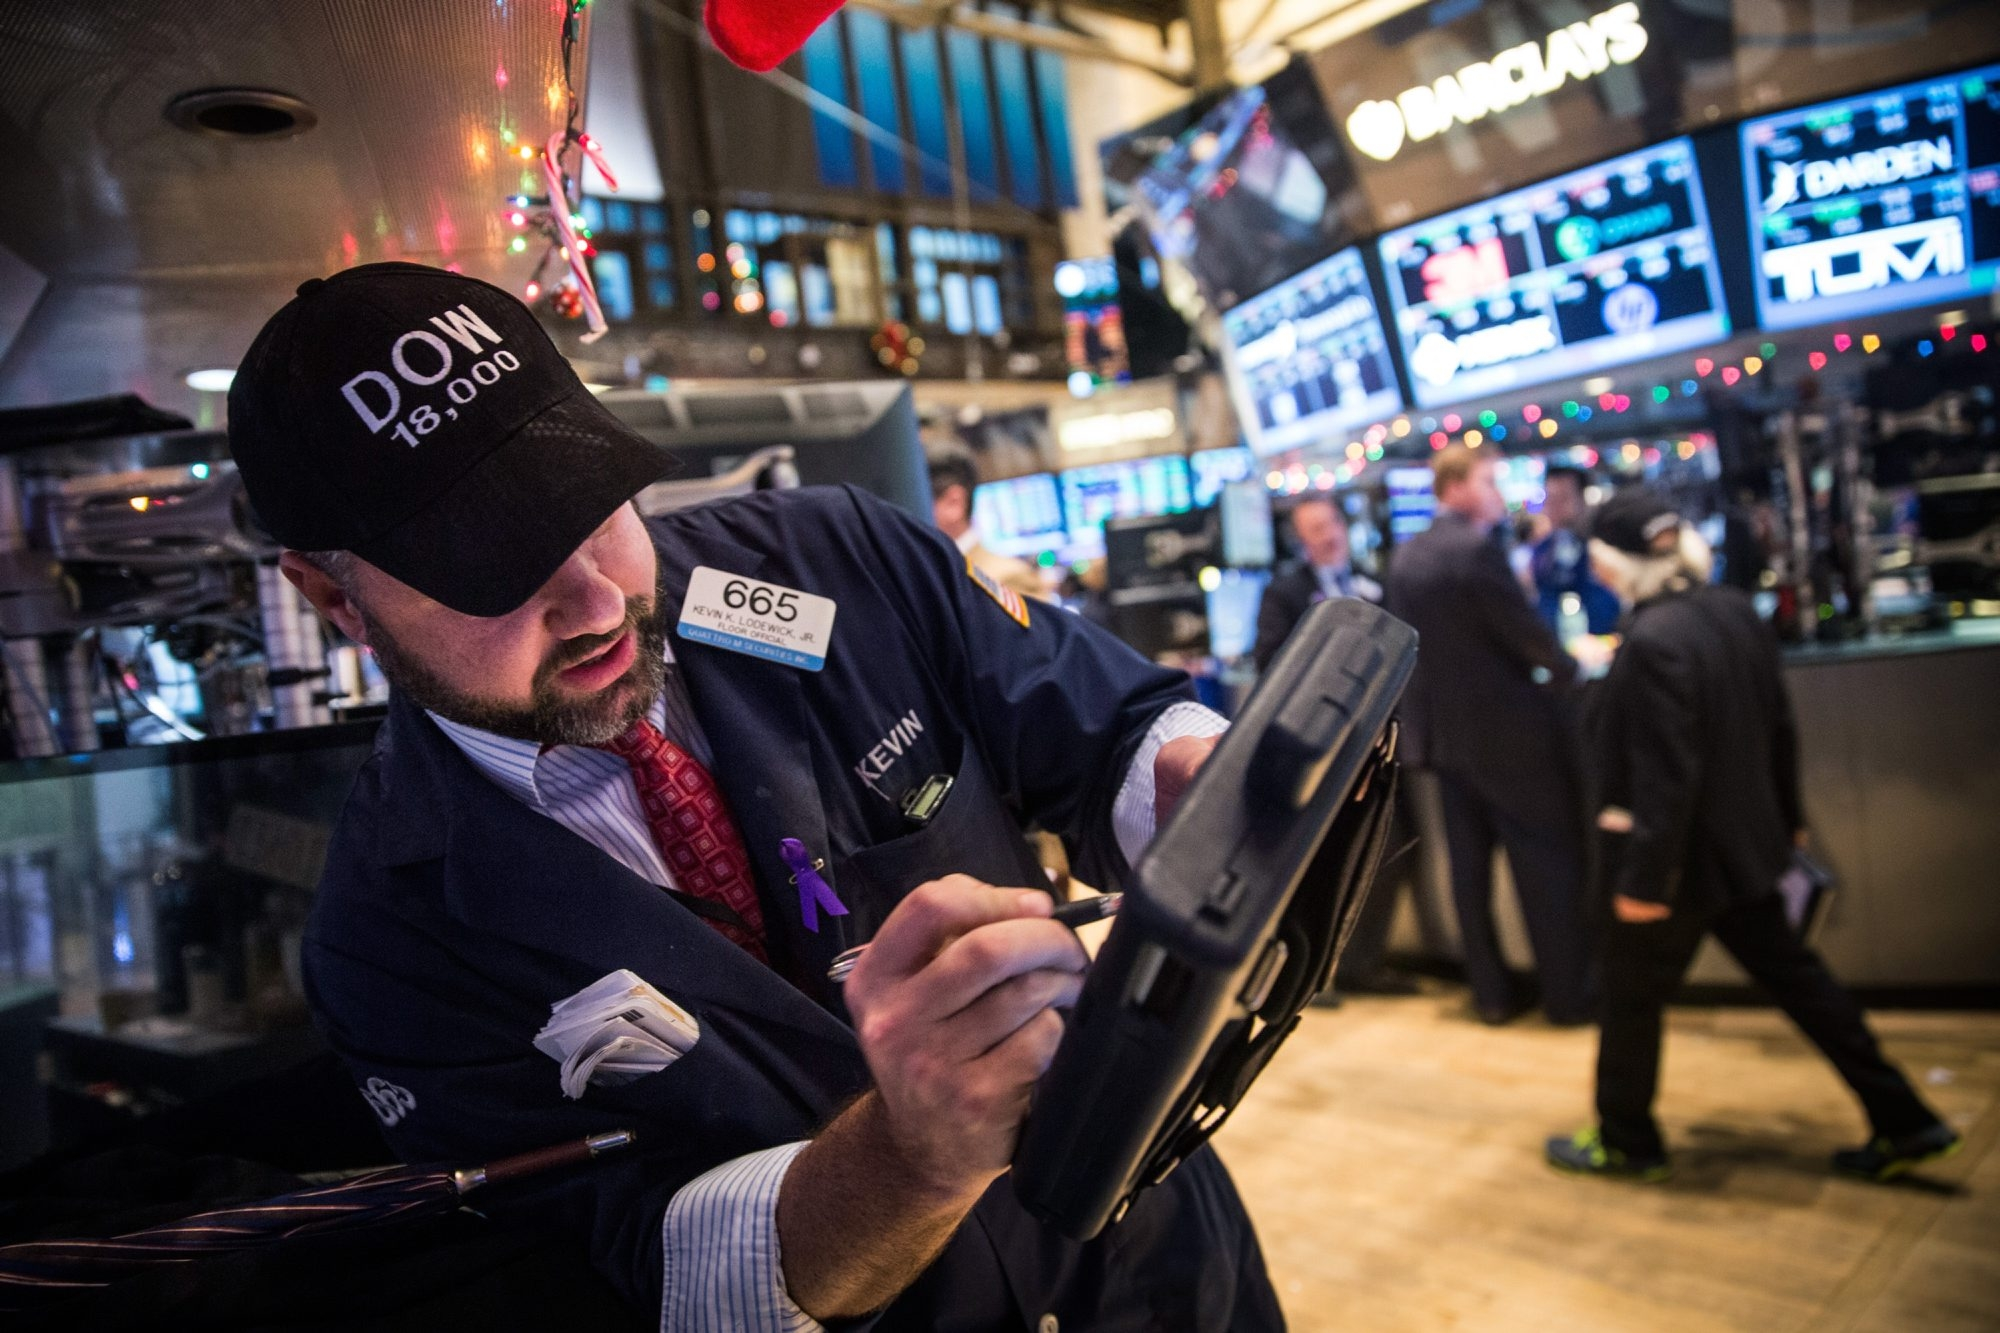 """Traders wear hats that say """"DOW 18,000"""" as they work on the floor of the New York Stock Exchange Tuesday afternoon in New York City. The Dow Jones industrial average crossed a landmark by closing above 18,000 points."""